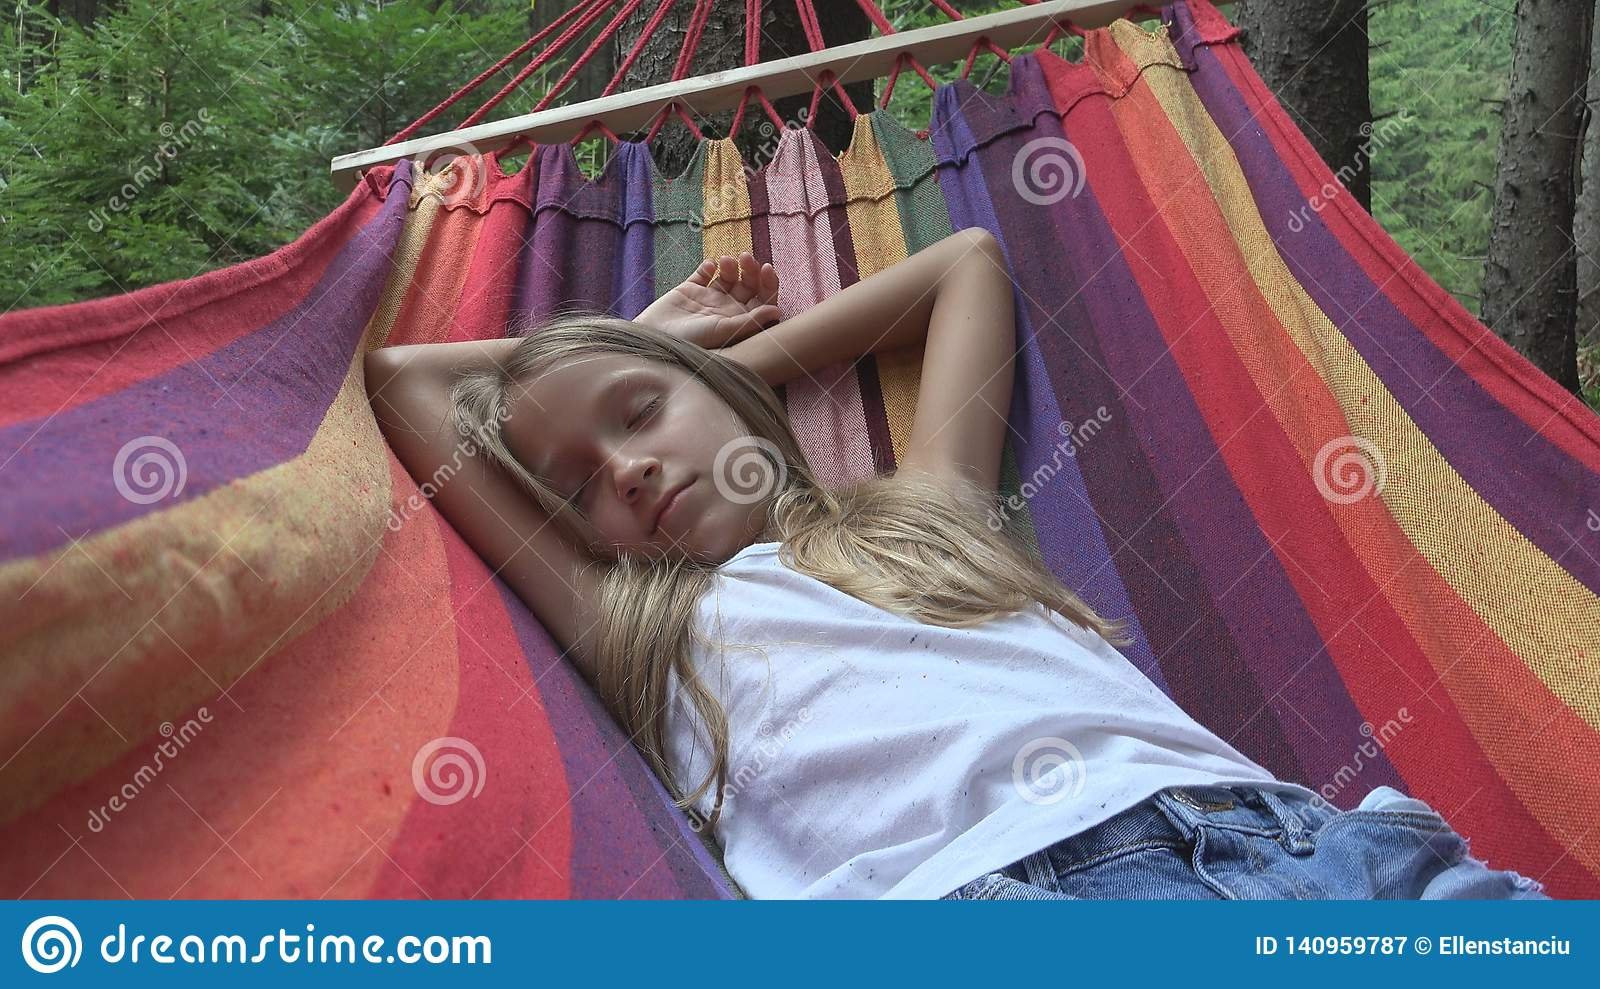 Child Sleeping in Hammock in Camping, Kid Relaxing in Forest, Girl in Mountains